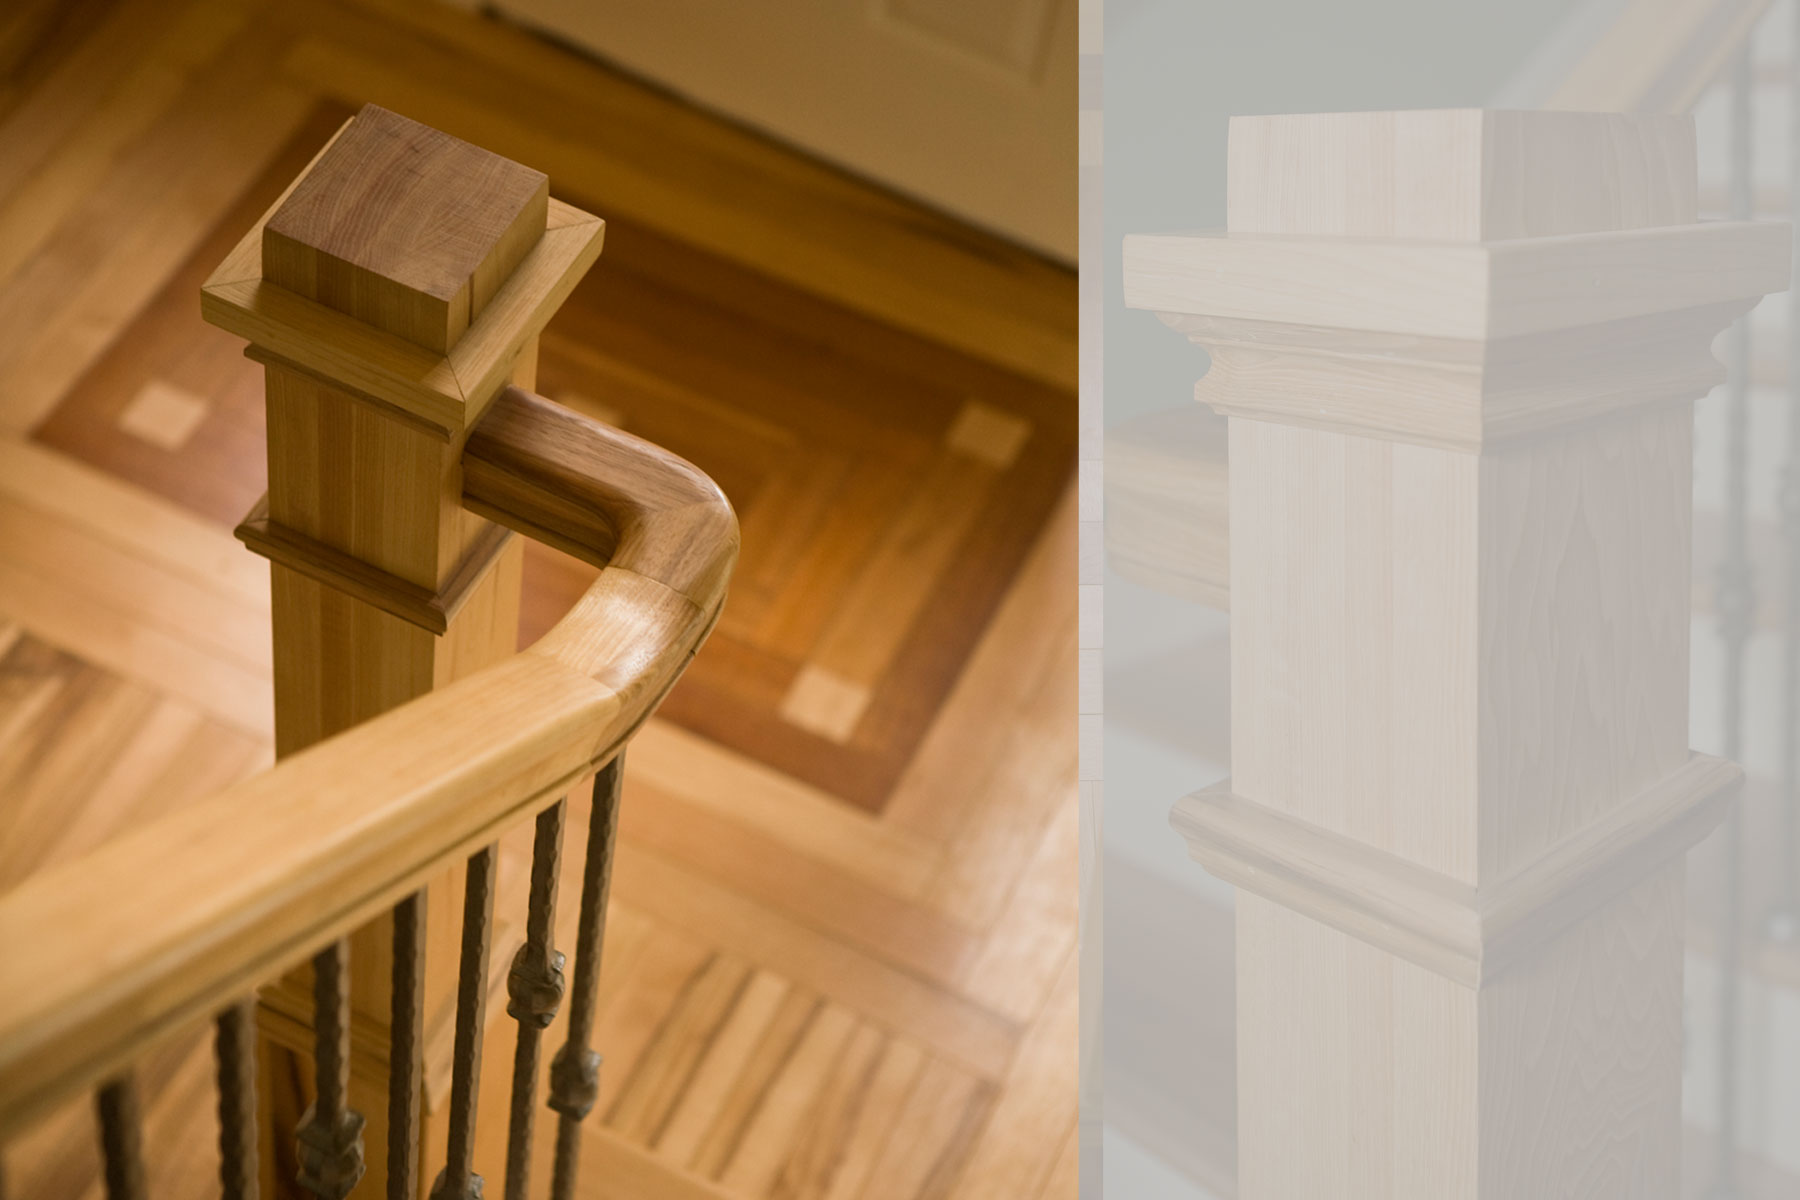 Detail of wood newel post in craftsman style renovation along with inlaid wood floor detail